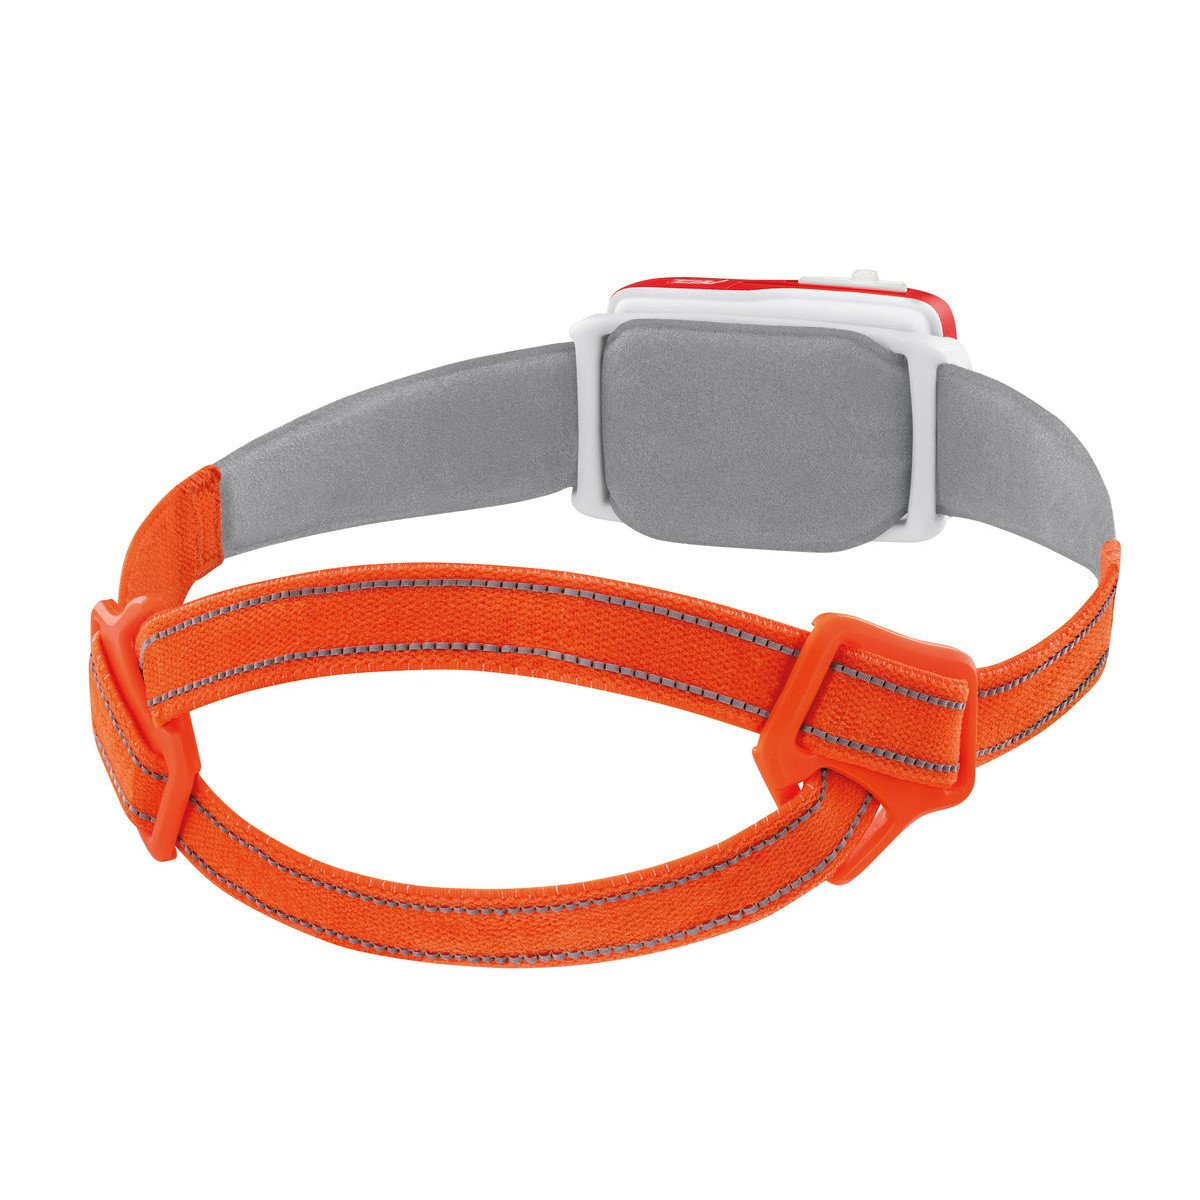 Rear of the Petzl Swift RL Headtorch in orange